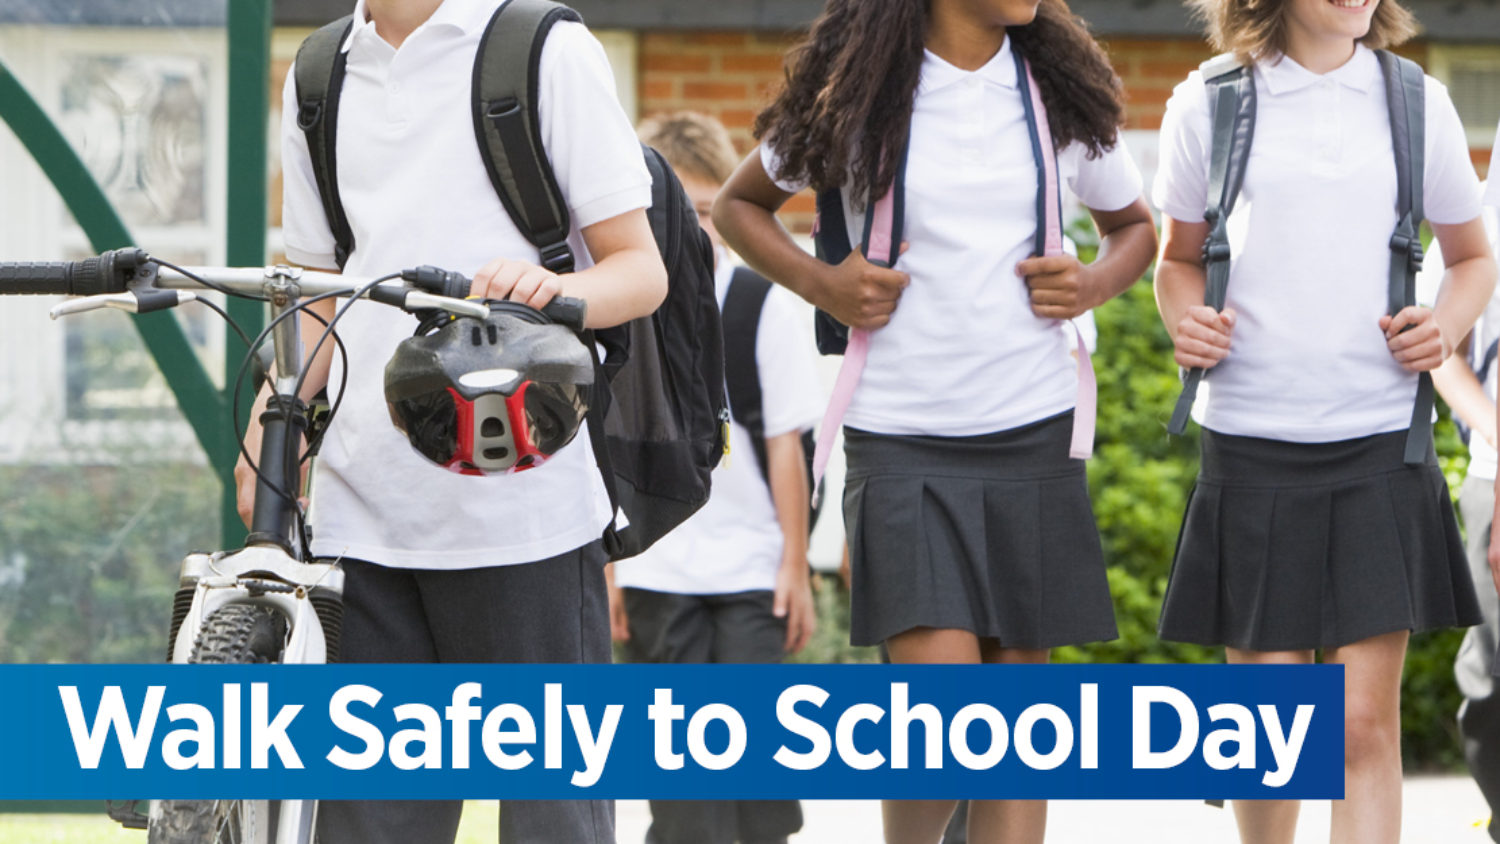 PARENTS AND KIDS ENCOURAGED TO WALK SAFELY TO SCHOOL FRIDAY 19TH MAY 2017